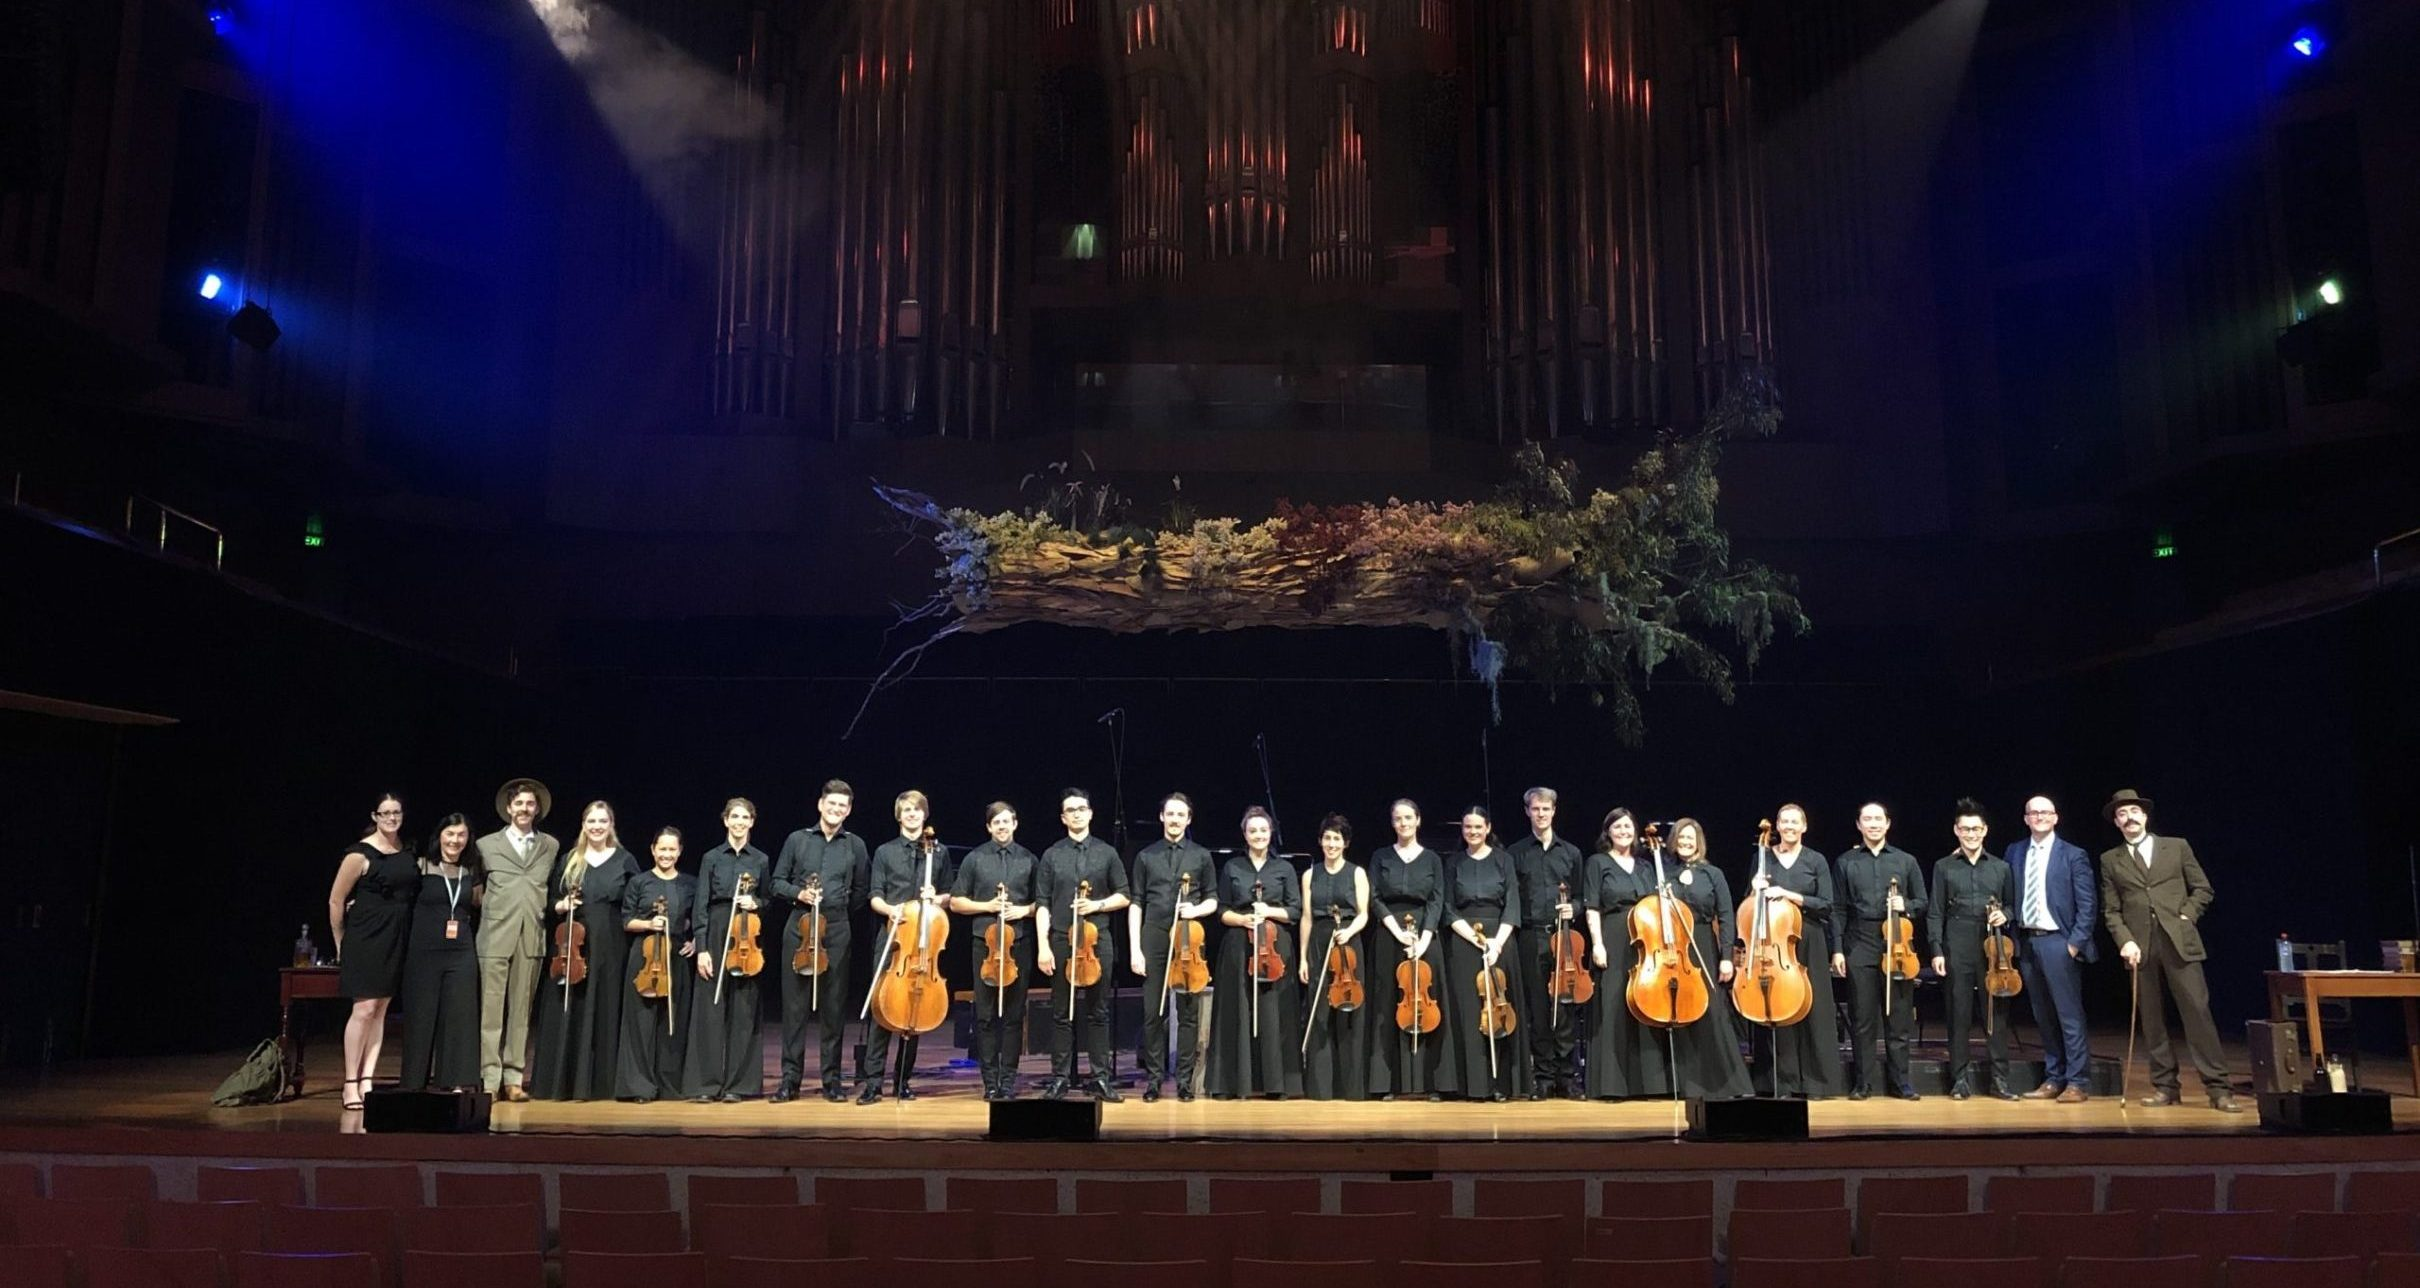 Camerata embraces innovation to continue sharing music